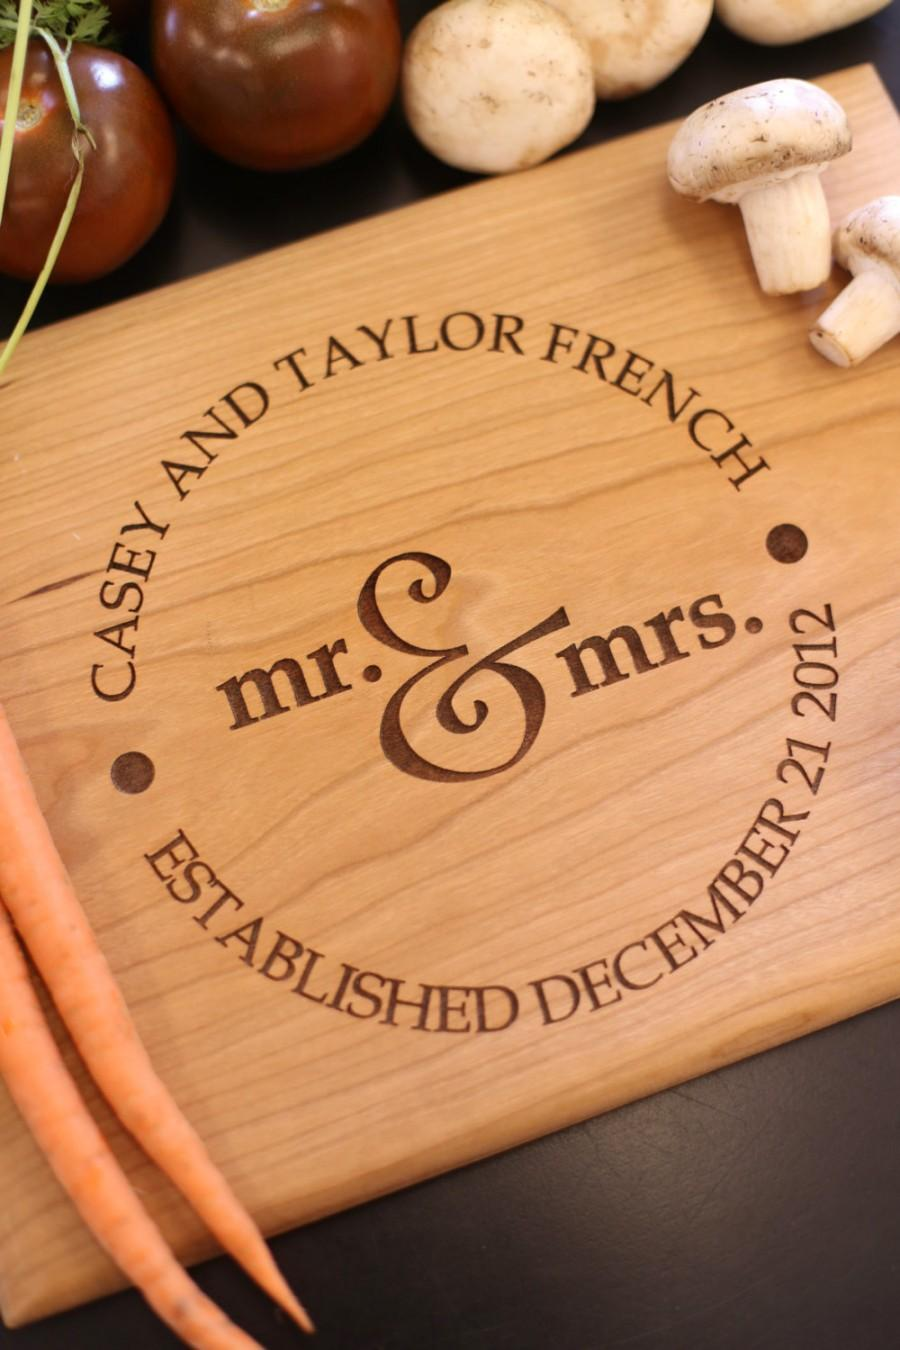 Mariage - Personalized Cutting Board Newlyweds Christmas Gift Bridal Shower Gift Wedding Gift Engraved (Item Number MHD20015)